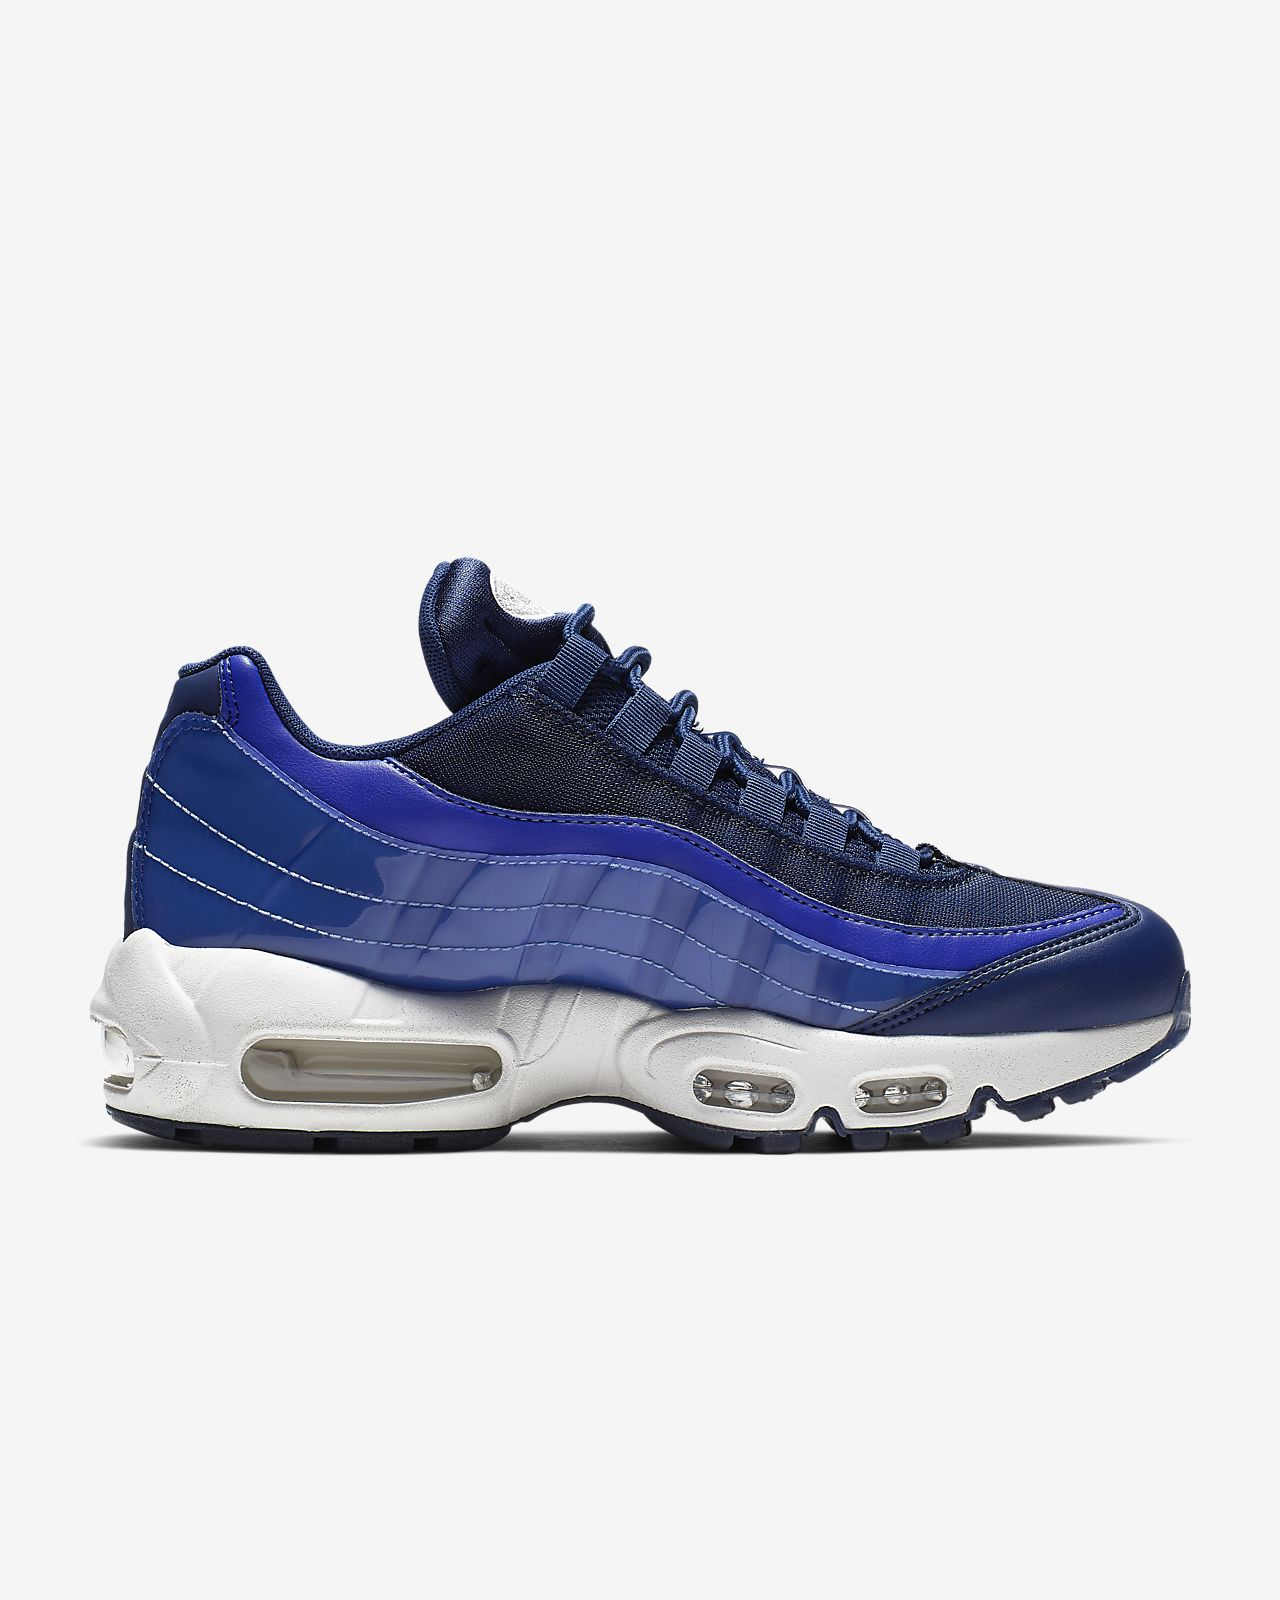 new style d7654 1ca63 ... Nike Air Max 95 SE Women s Shoe